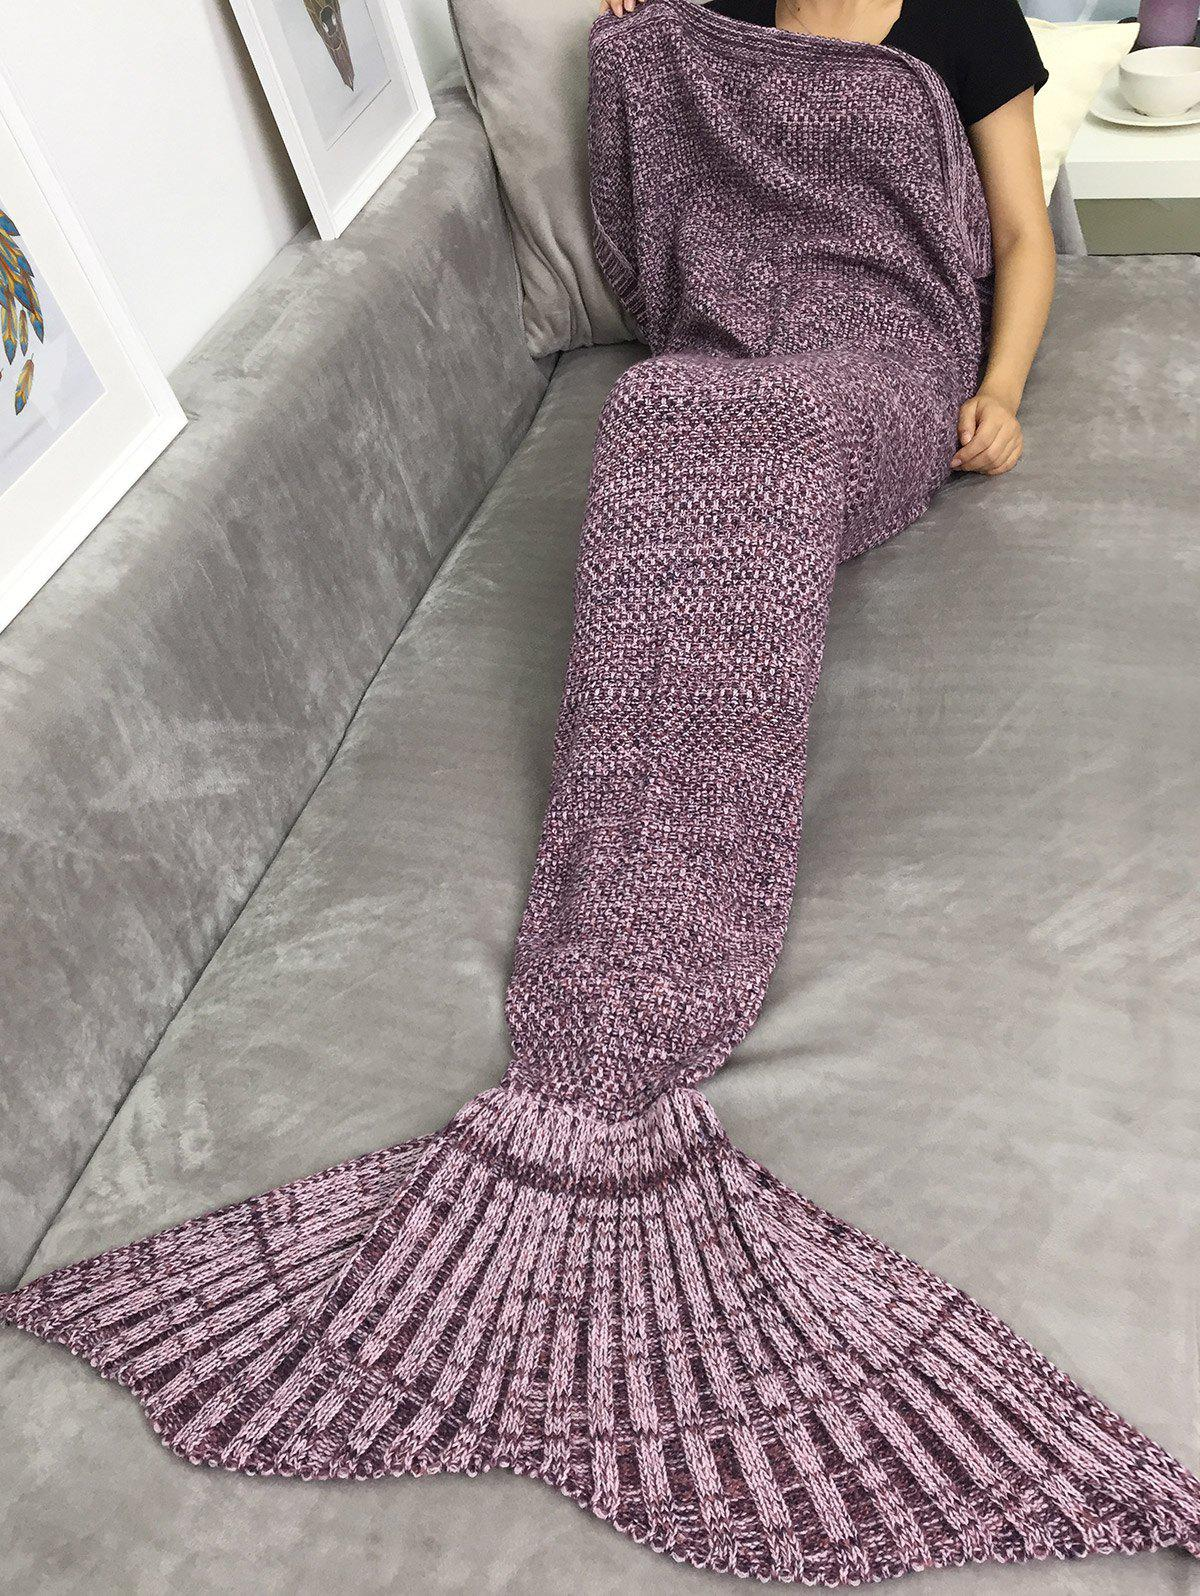 Thicken Crochet Sofa Bed Sleeping Bag Wrap Mermaid BlanketHOME<br><br>Color: FLAX; Type: Knitted; Material: Acrylic; Pattern Type: Stripe; Size(L*W)(CM): 170*80; Weight: 0.810kg; Package Contents: 1 x Blanket;